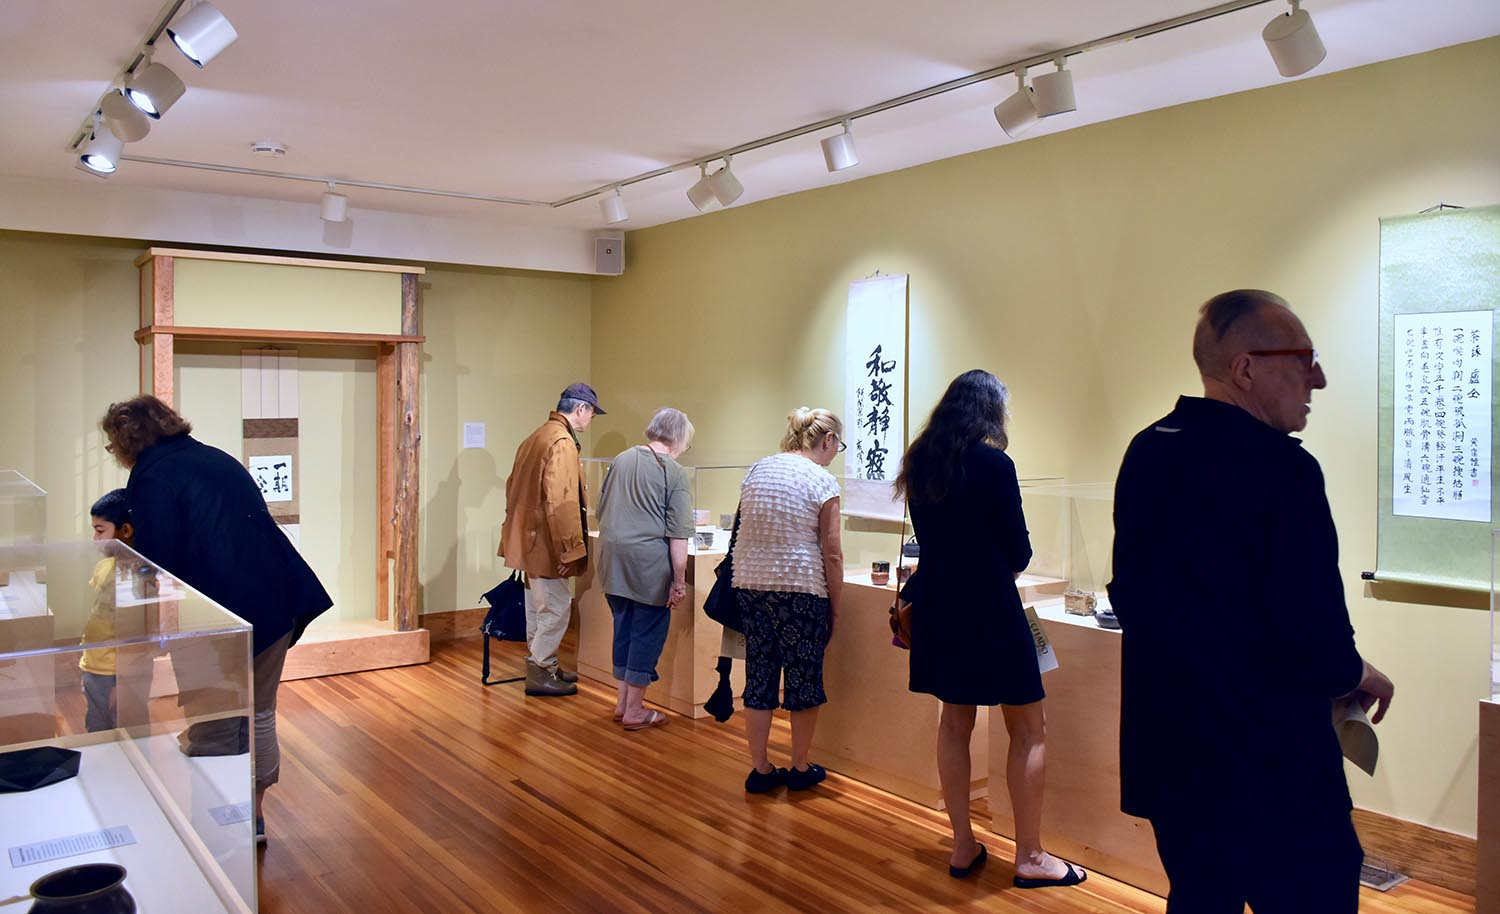 The exhibition Chado: The Way of Tea opened in the College of East Asian Studies Gallery at Mansfield Freeman Center on Sept. 12. The exhibit explores the prominent role and significance of the tea ceremony as an art and spiritual practice in China and Japan.